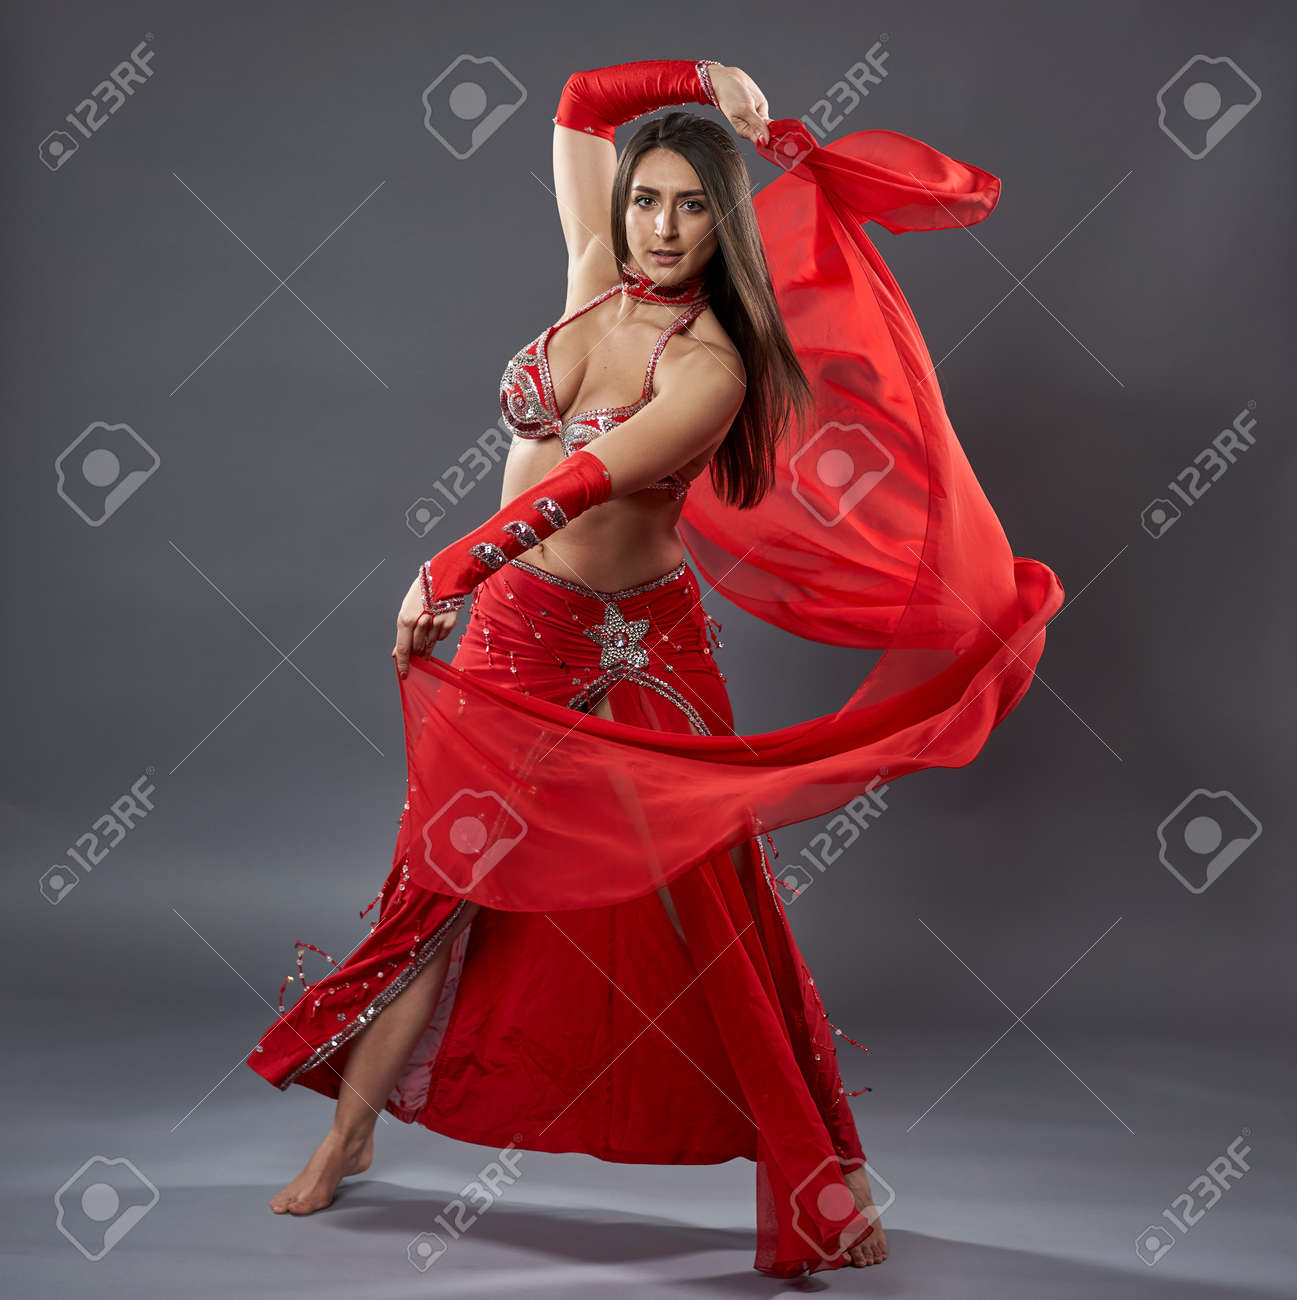 Arab woman belly dancer in red sparkling costume on gray background - 164412588